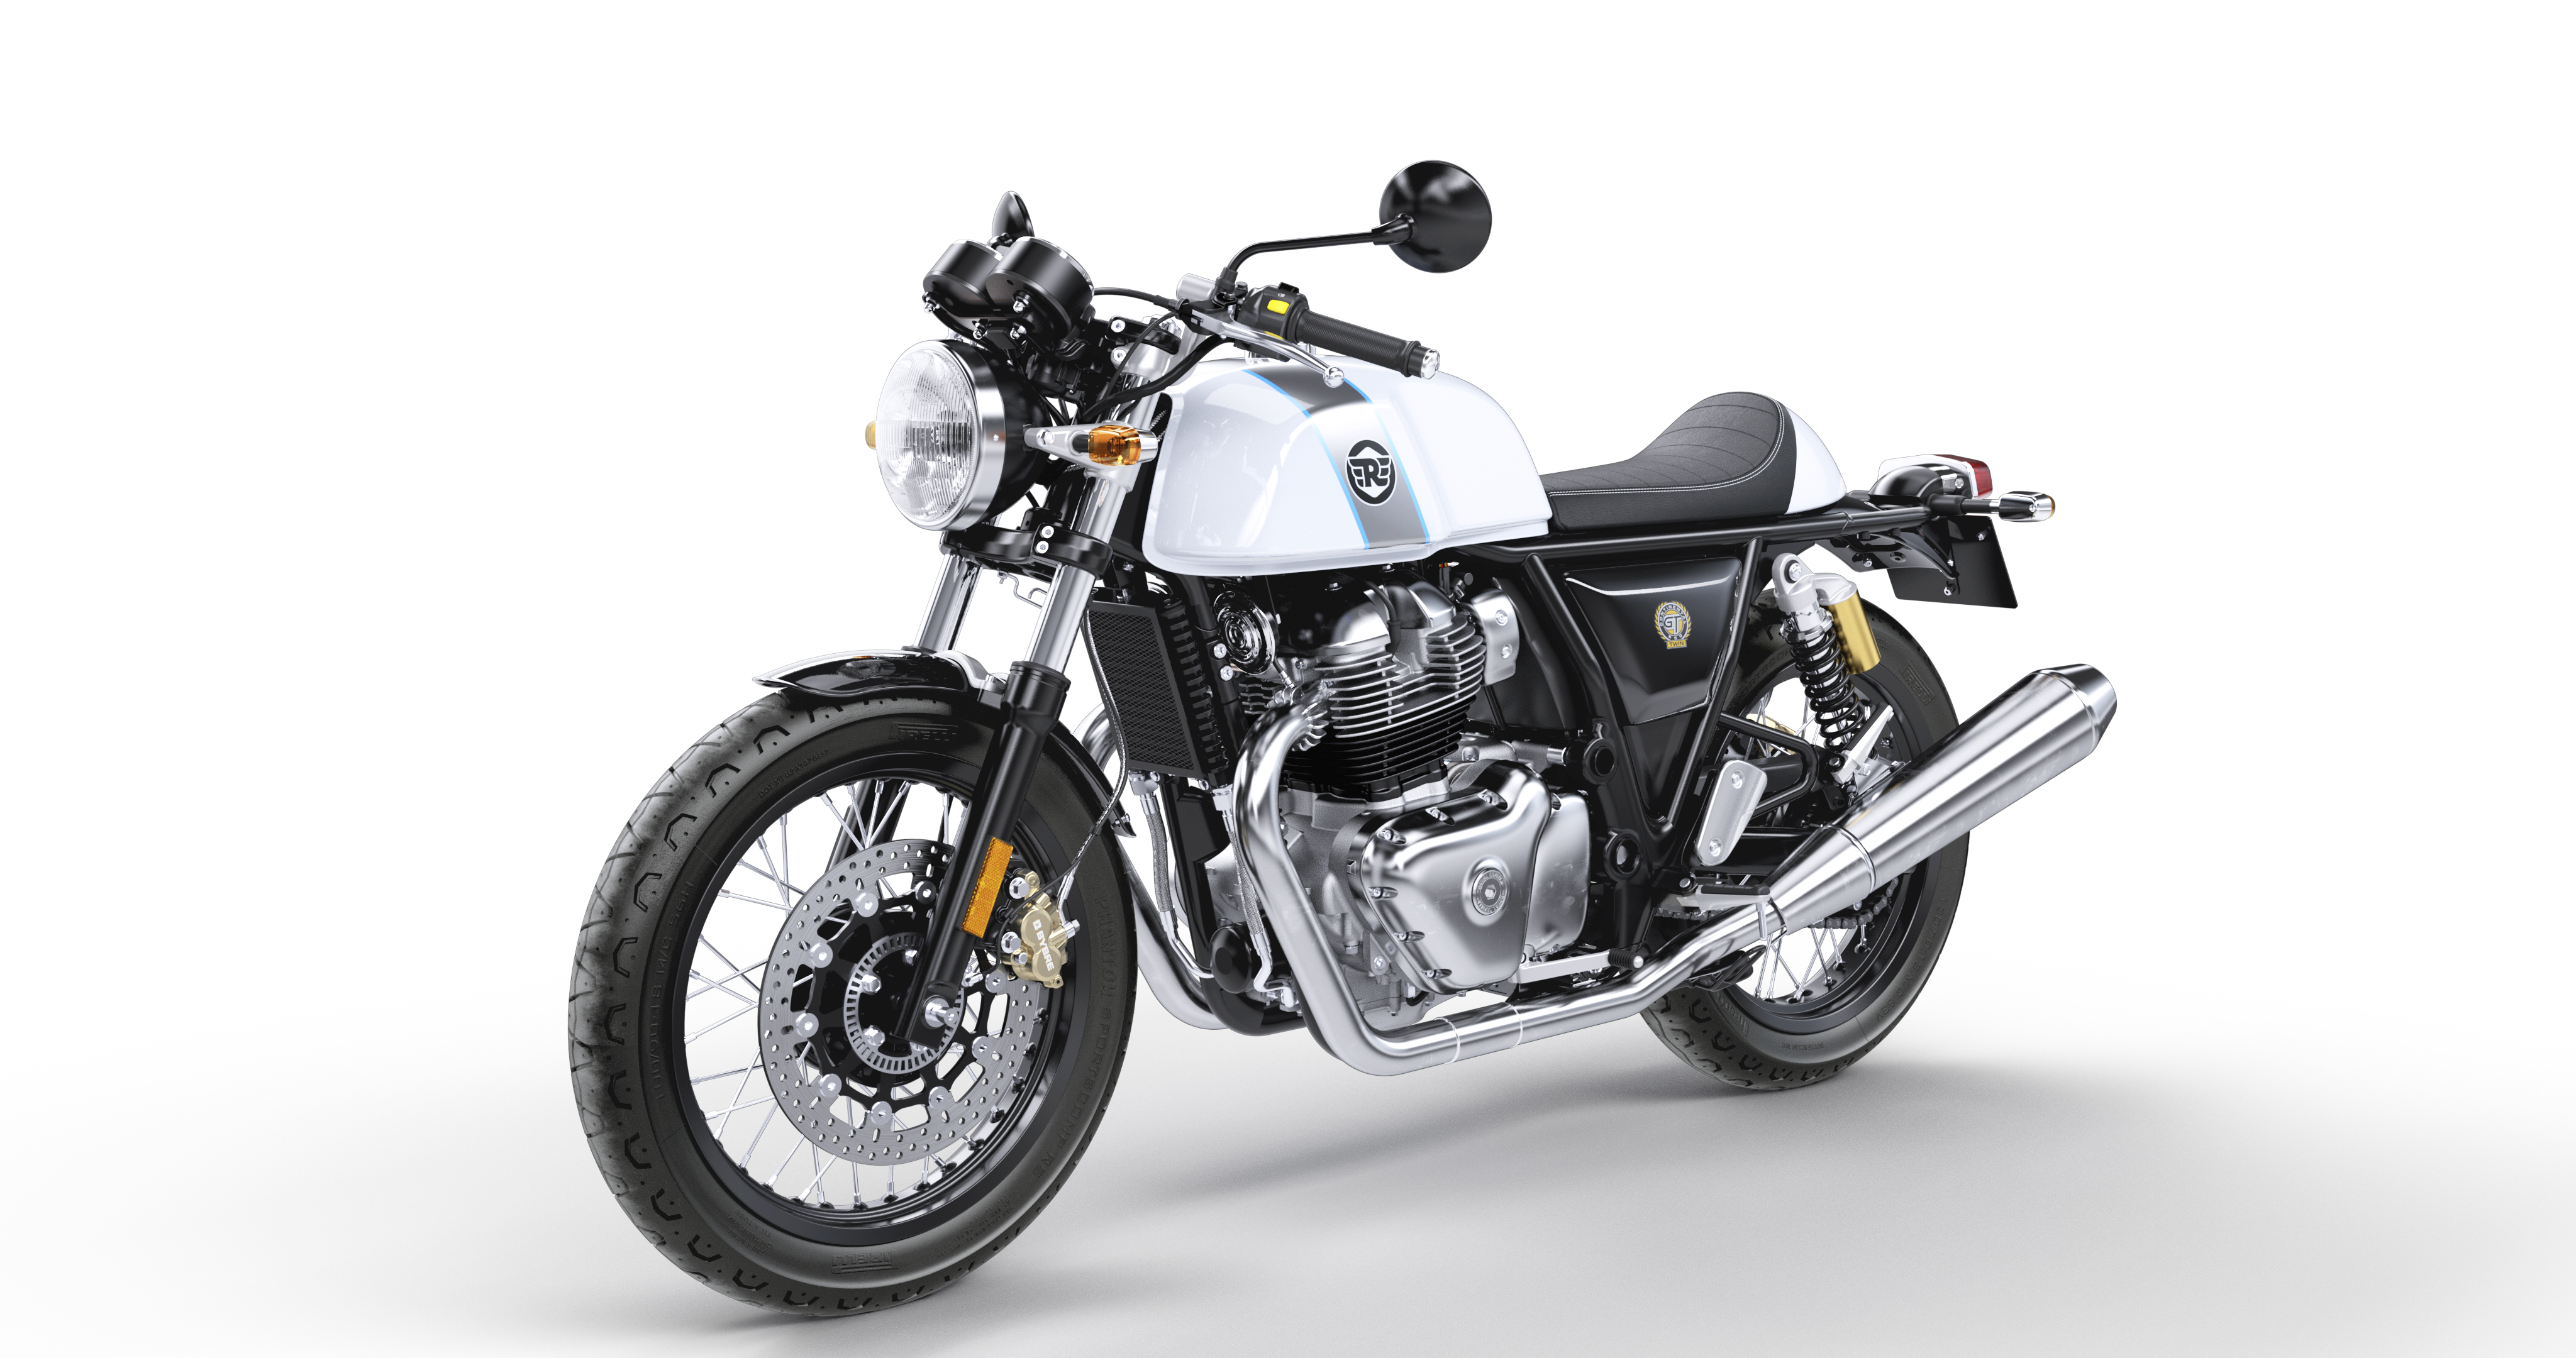 2019 Royal Enfield Continental GT and Interceptor first ride